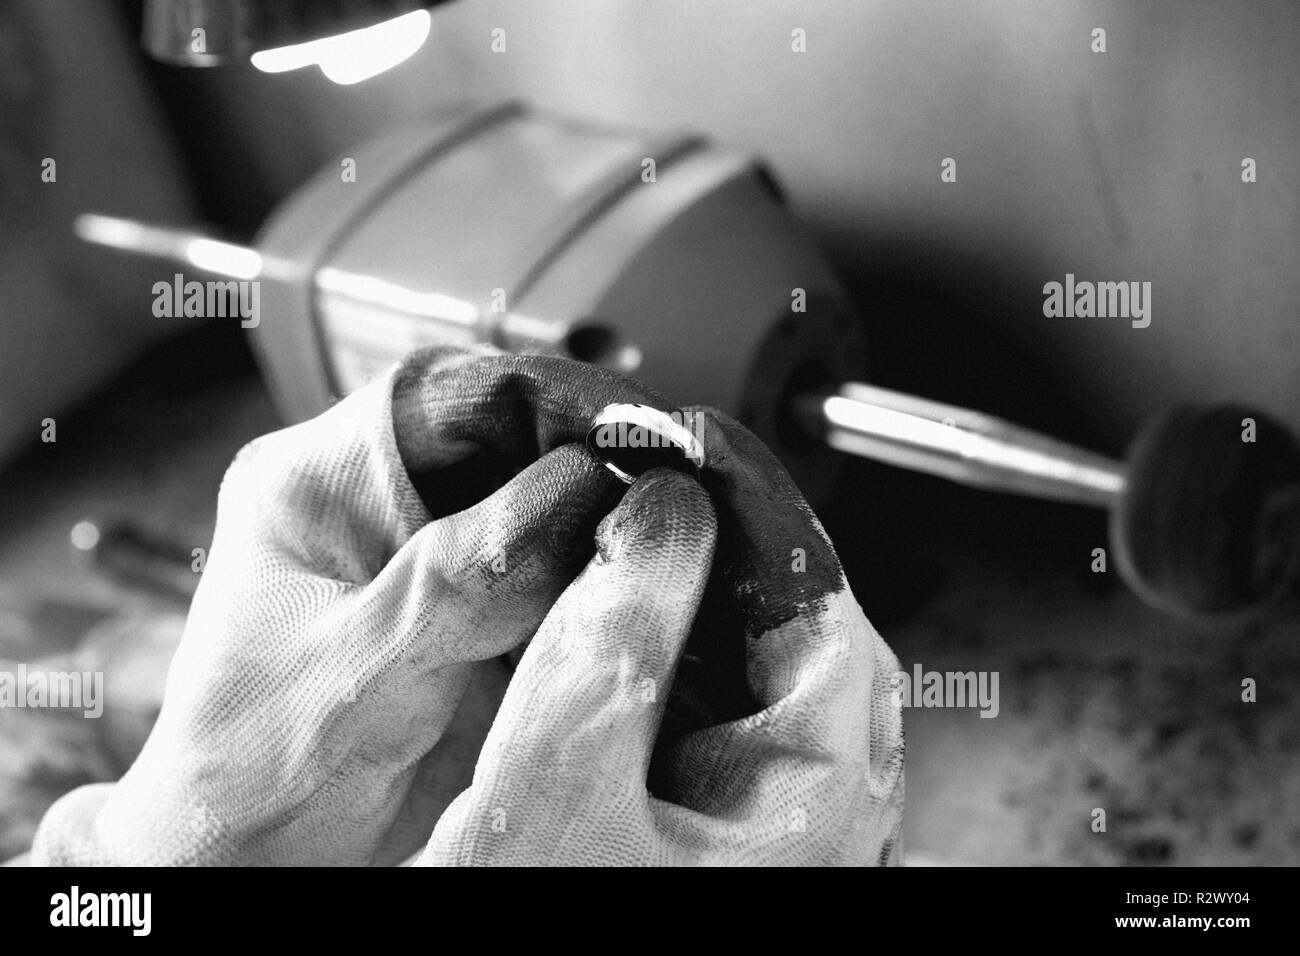 Jeweler at work, crafting in a jewelry workshop. - Stock Image